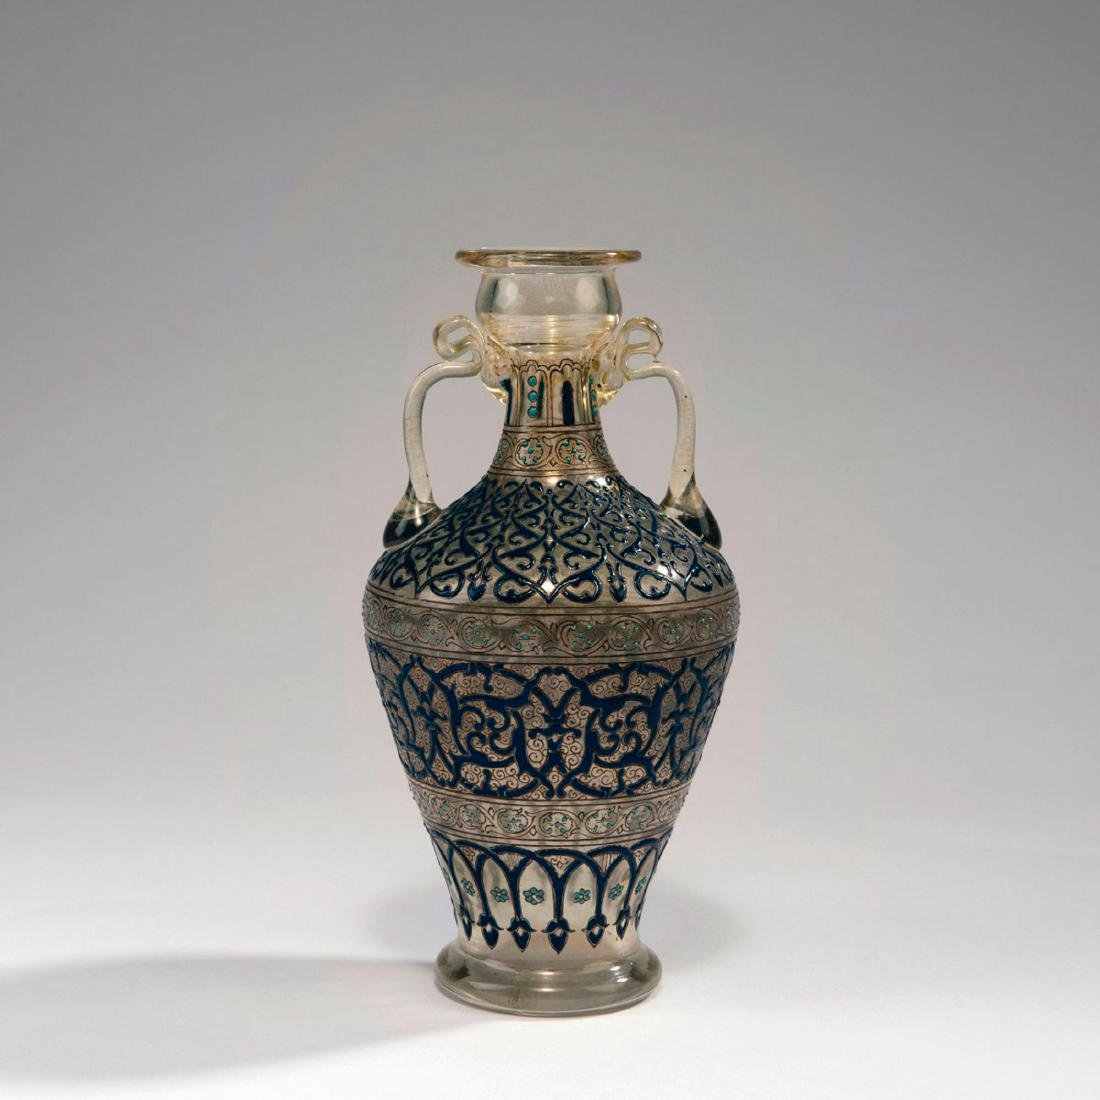 Vase with handles, dated 1880